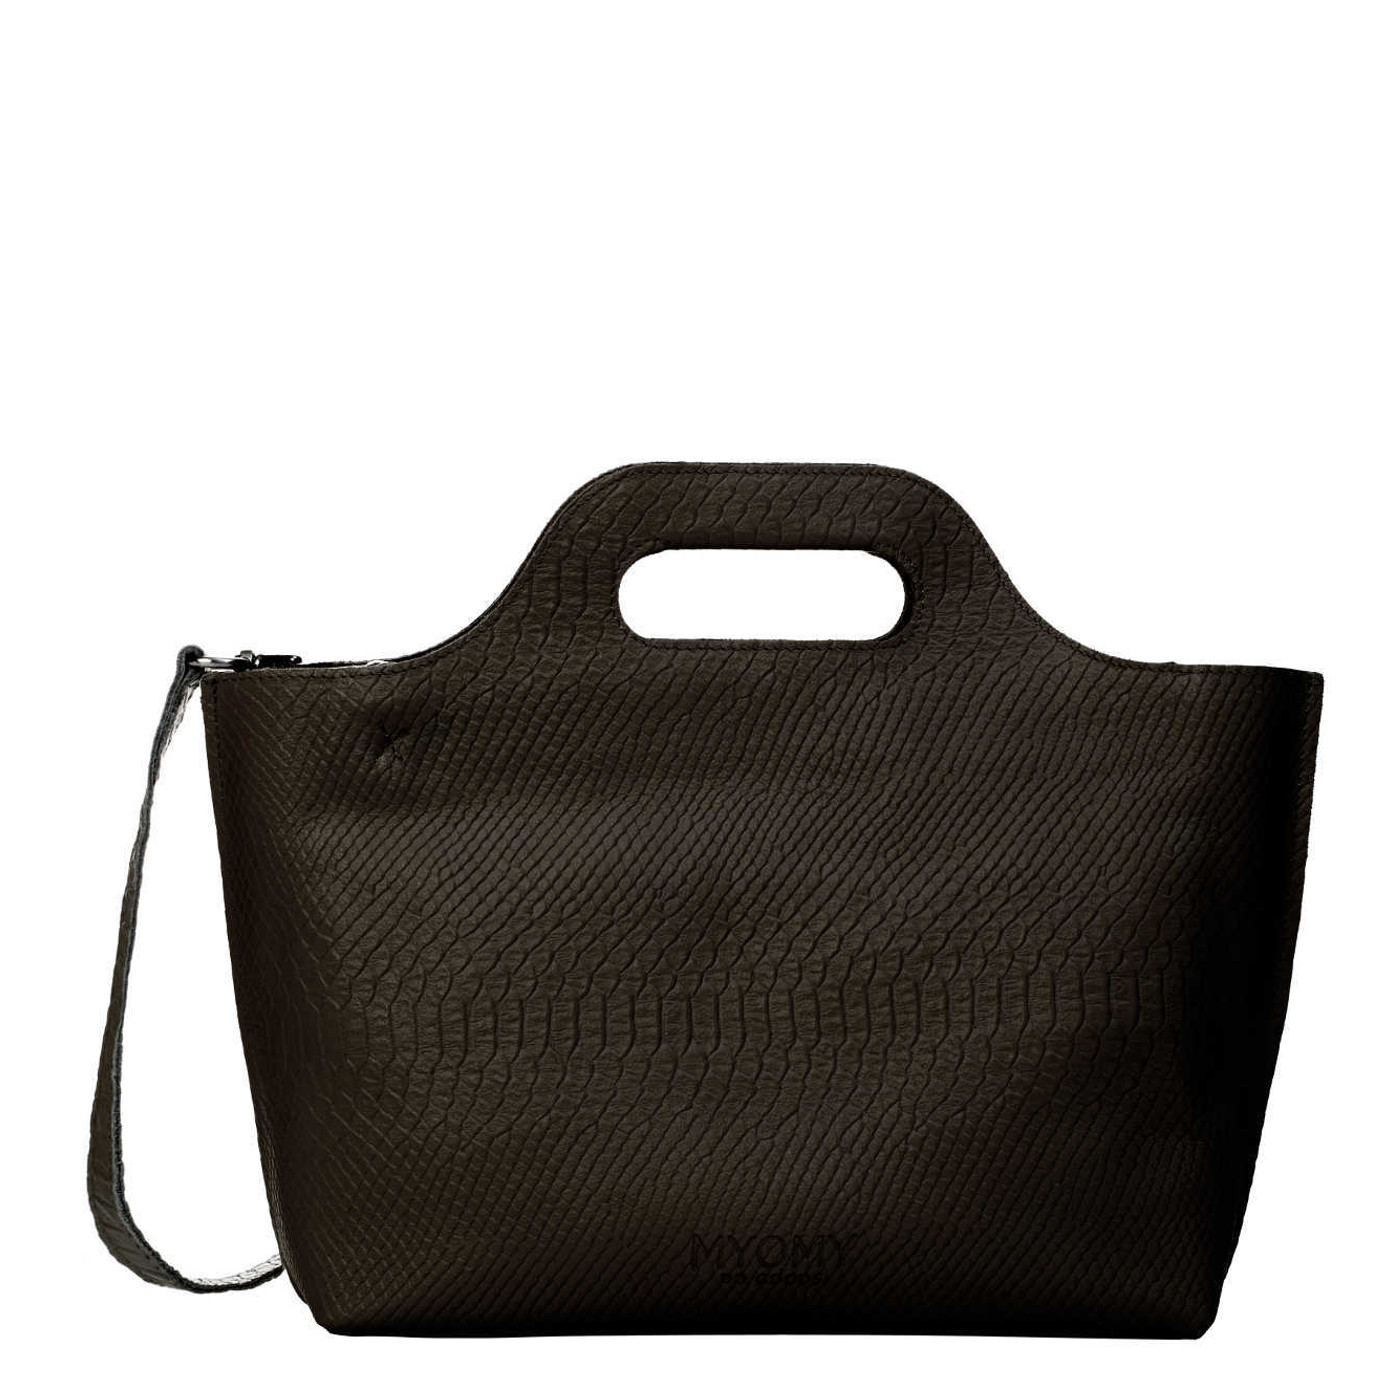 MYOMY My Carry Bag Handbag Anaconda Black Handt...